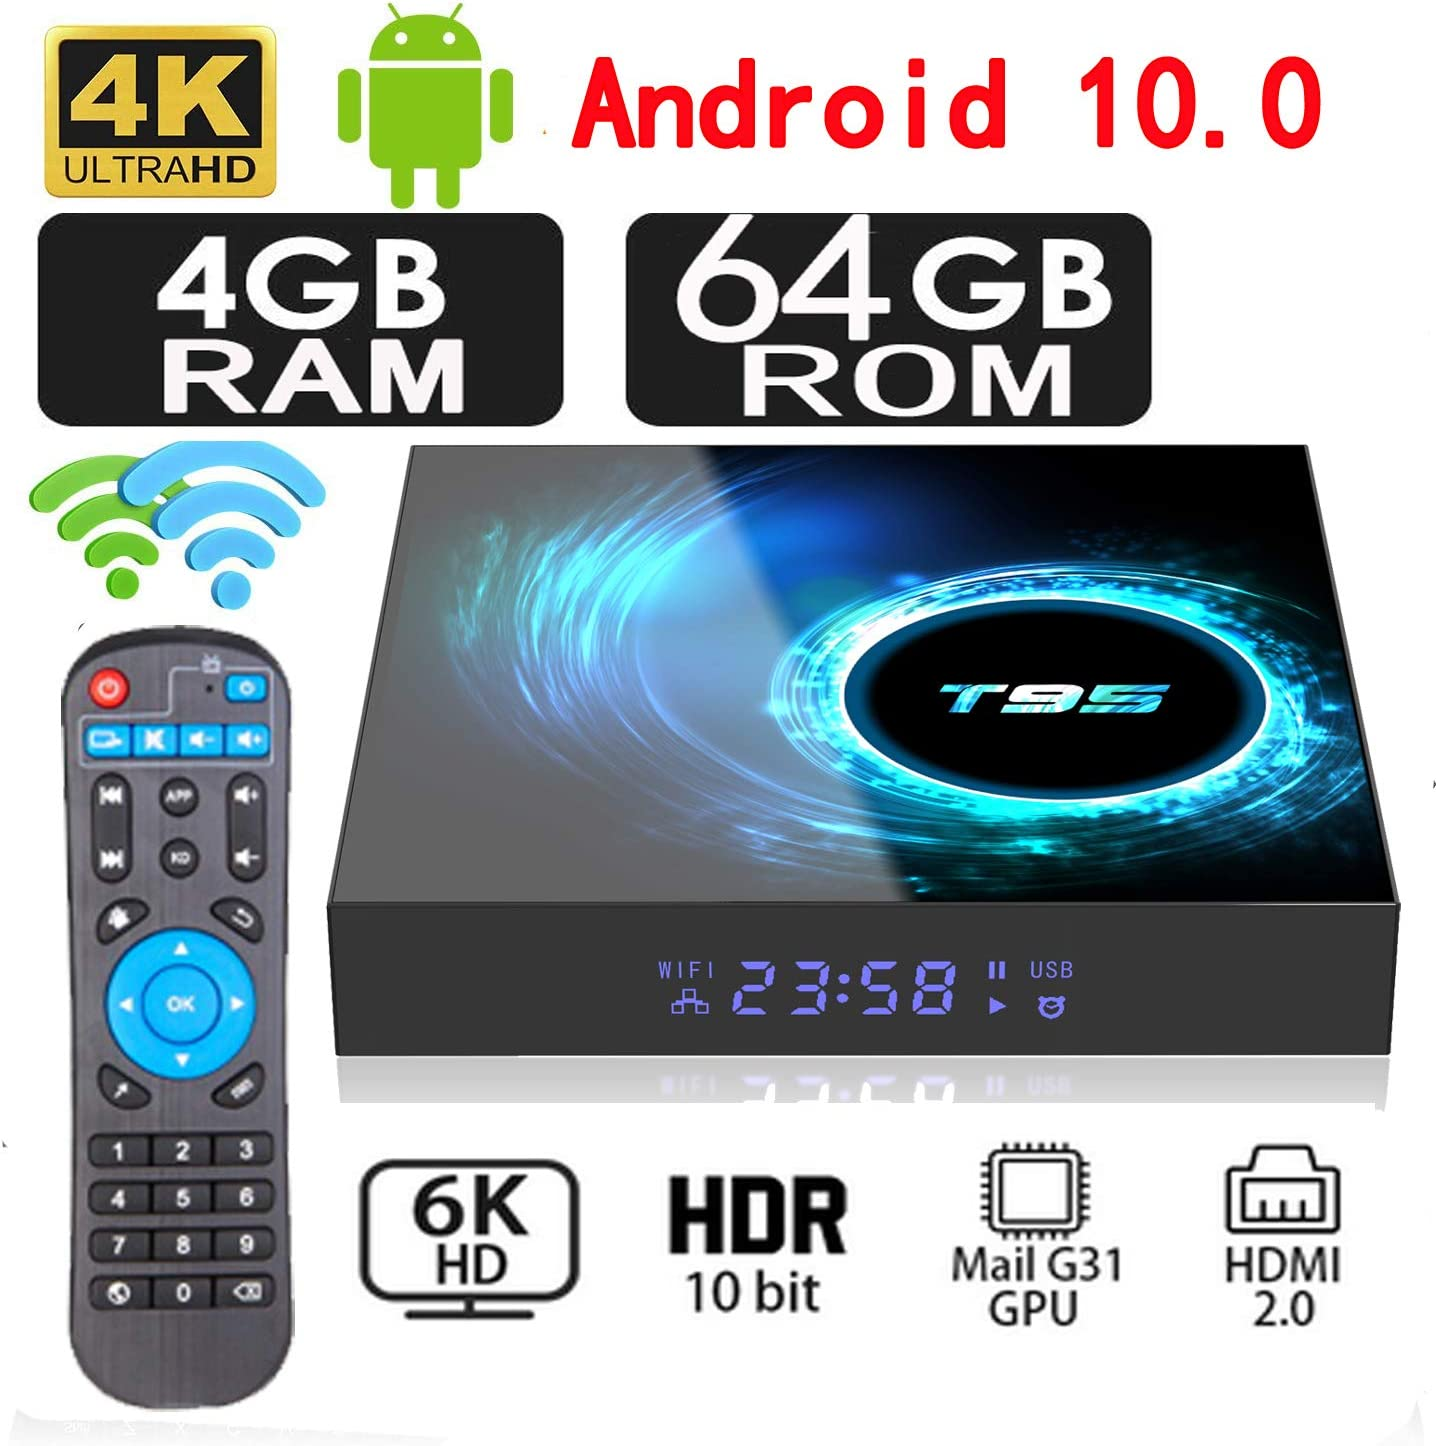 2020 New Upgrade Android 10.0 TV Box 4GB RAM 64GB ROM Allwinner H616 Quad-core 64bit WiFi 2.4/5GHz WiFi Bluetooth, HDMI 2.0 Support 4K 3D/H.265 Android Box